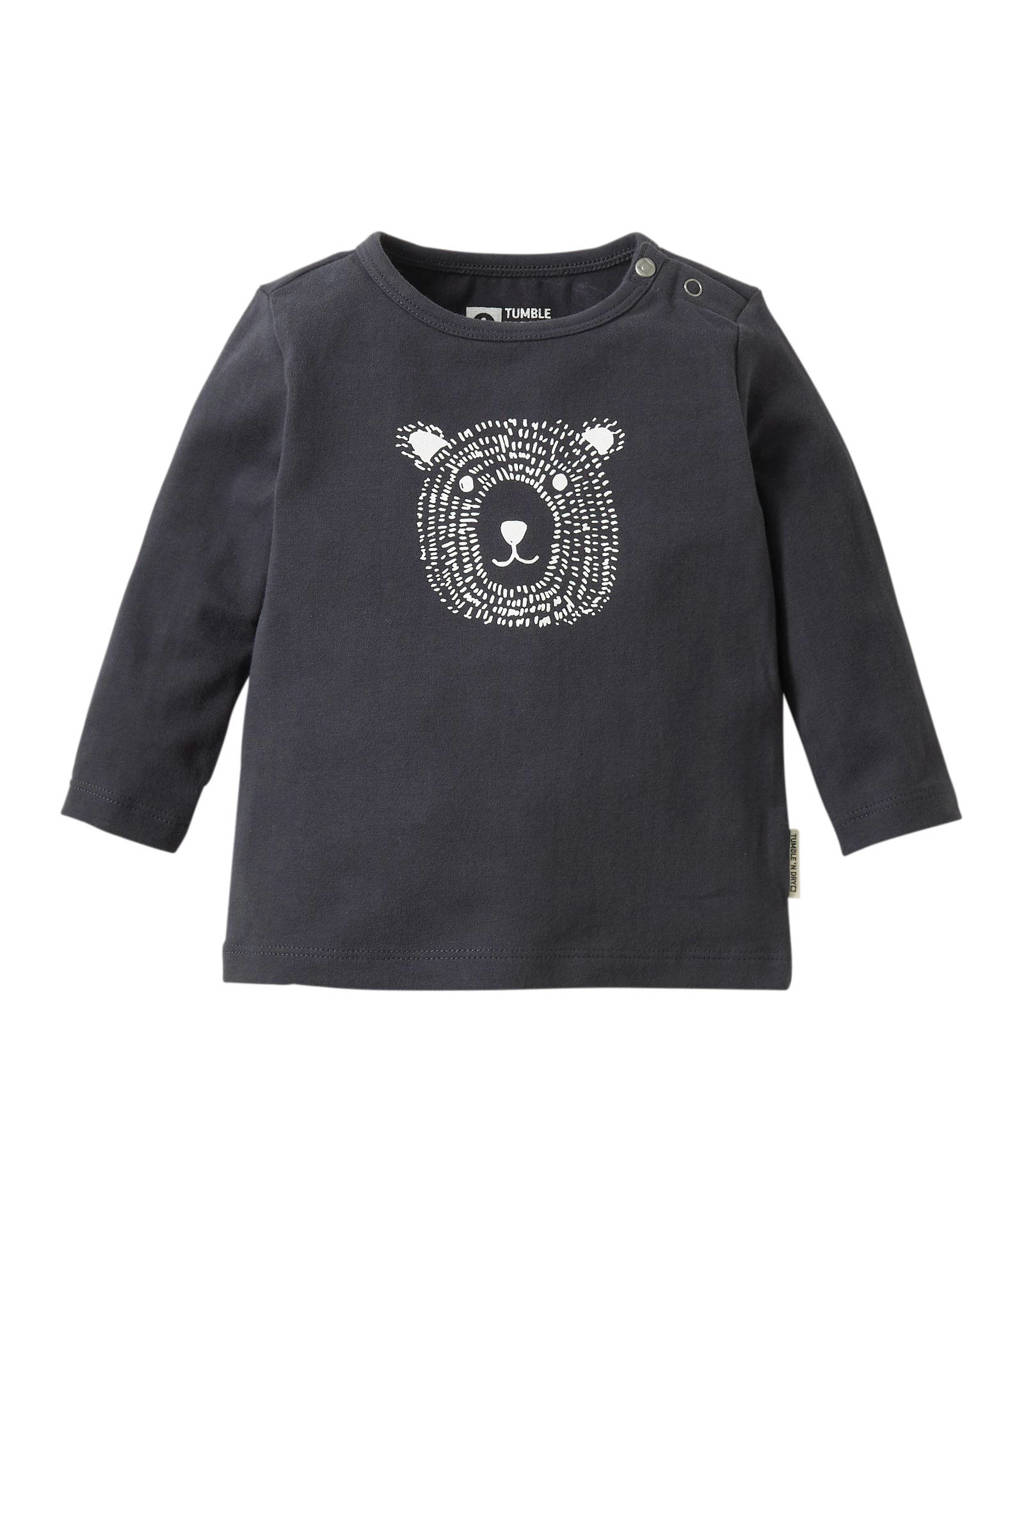 Tumble 'n Dry Zero newborn baby longsleeve, India Ink